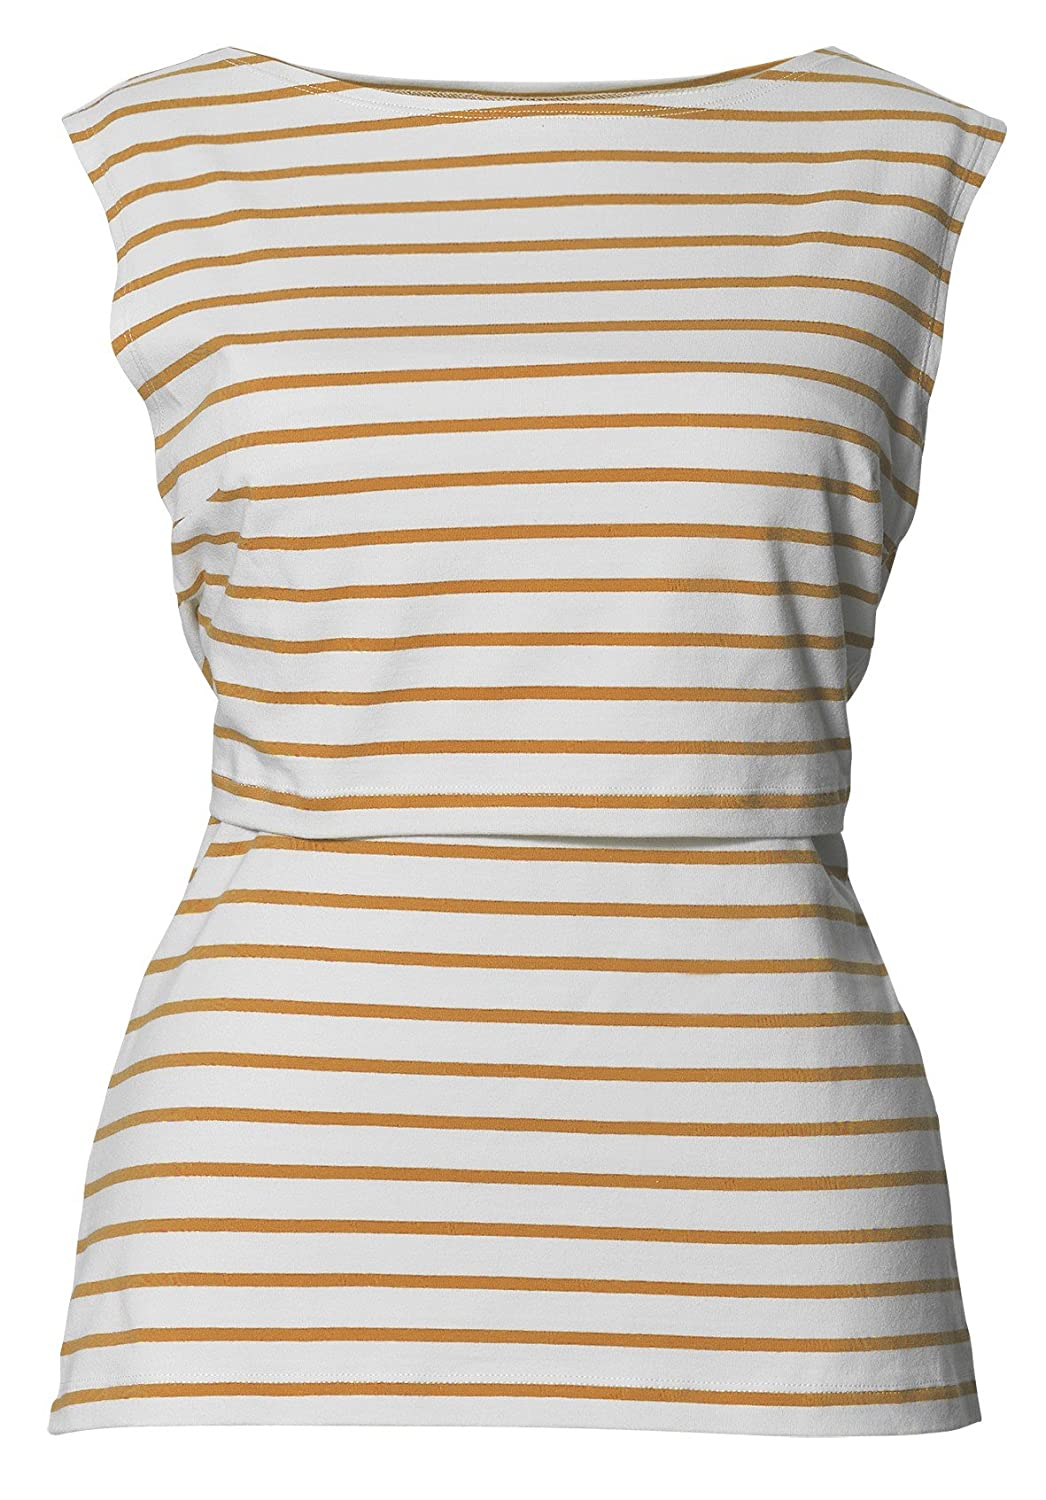 BOOB DESIGN Women's Striped Sleeveless Maternity Vest Top White Black White Stripe - - 6